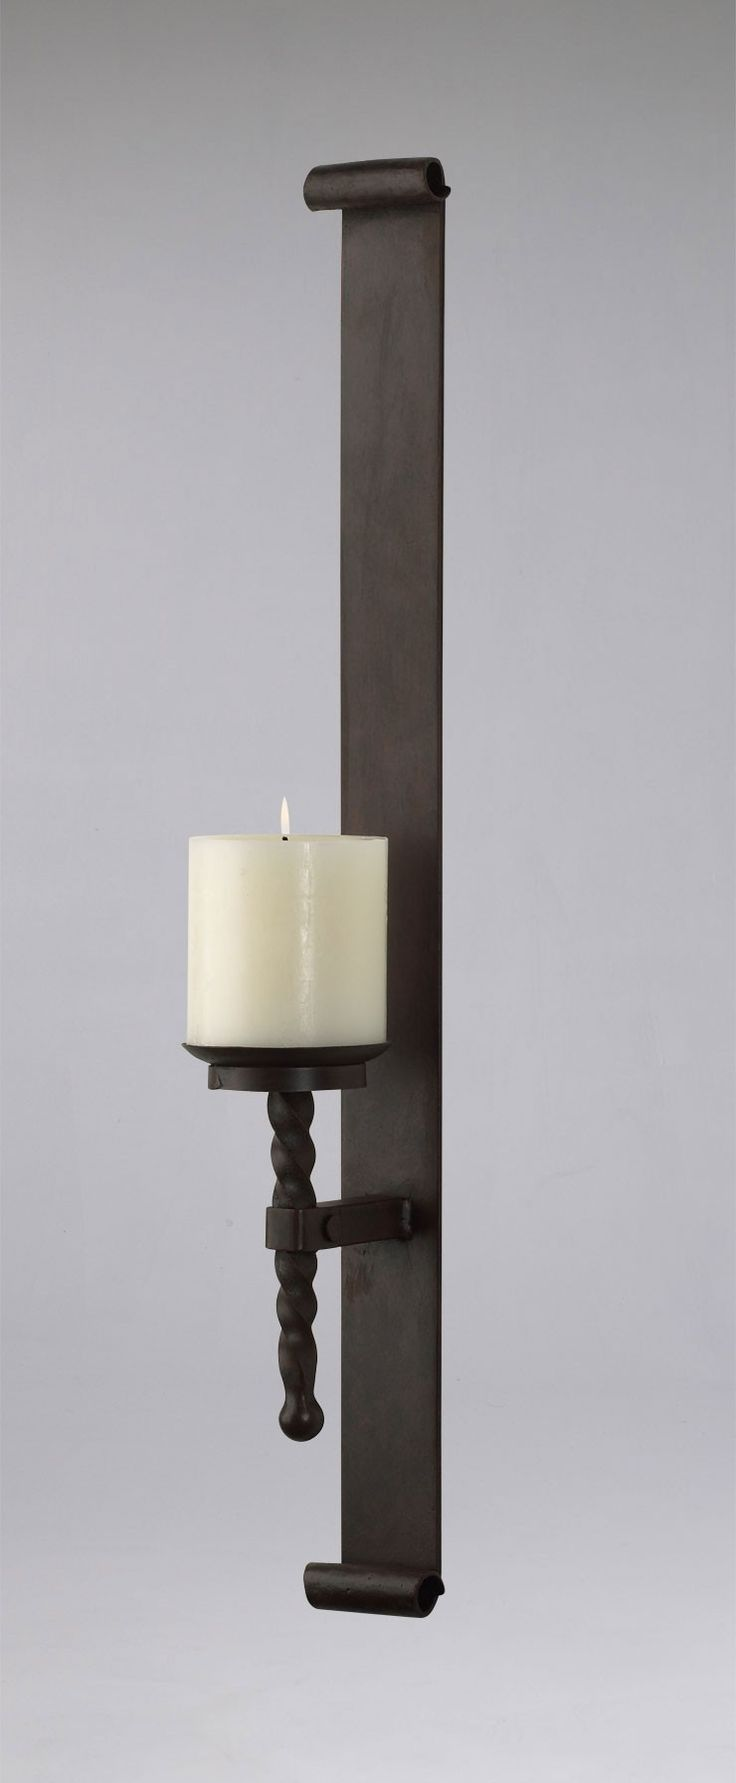 cyan design tuscan iron wall candle holder sconce large